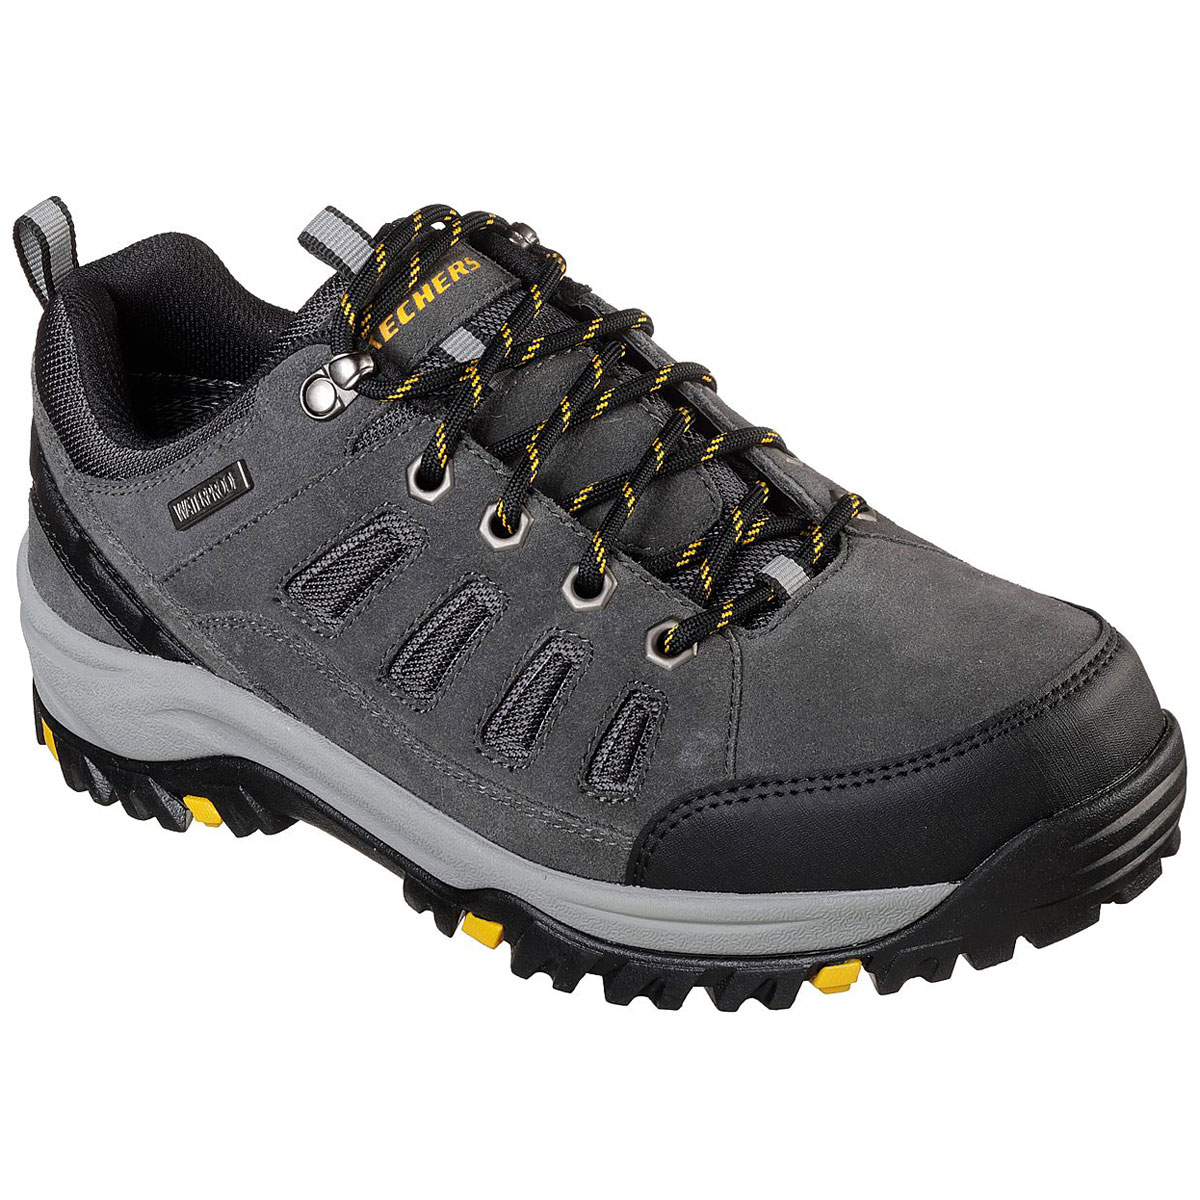 "Skechers Men's Relaxed Fit: Relment A "" Sonego Waterproof Low Hiking Shoes - Black, 9.5"